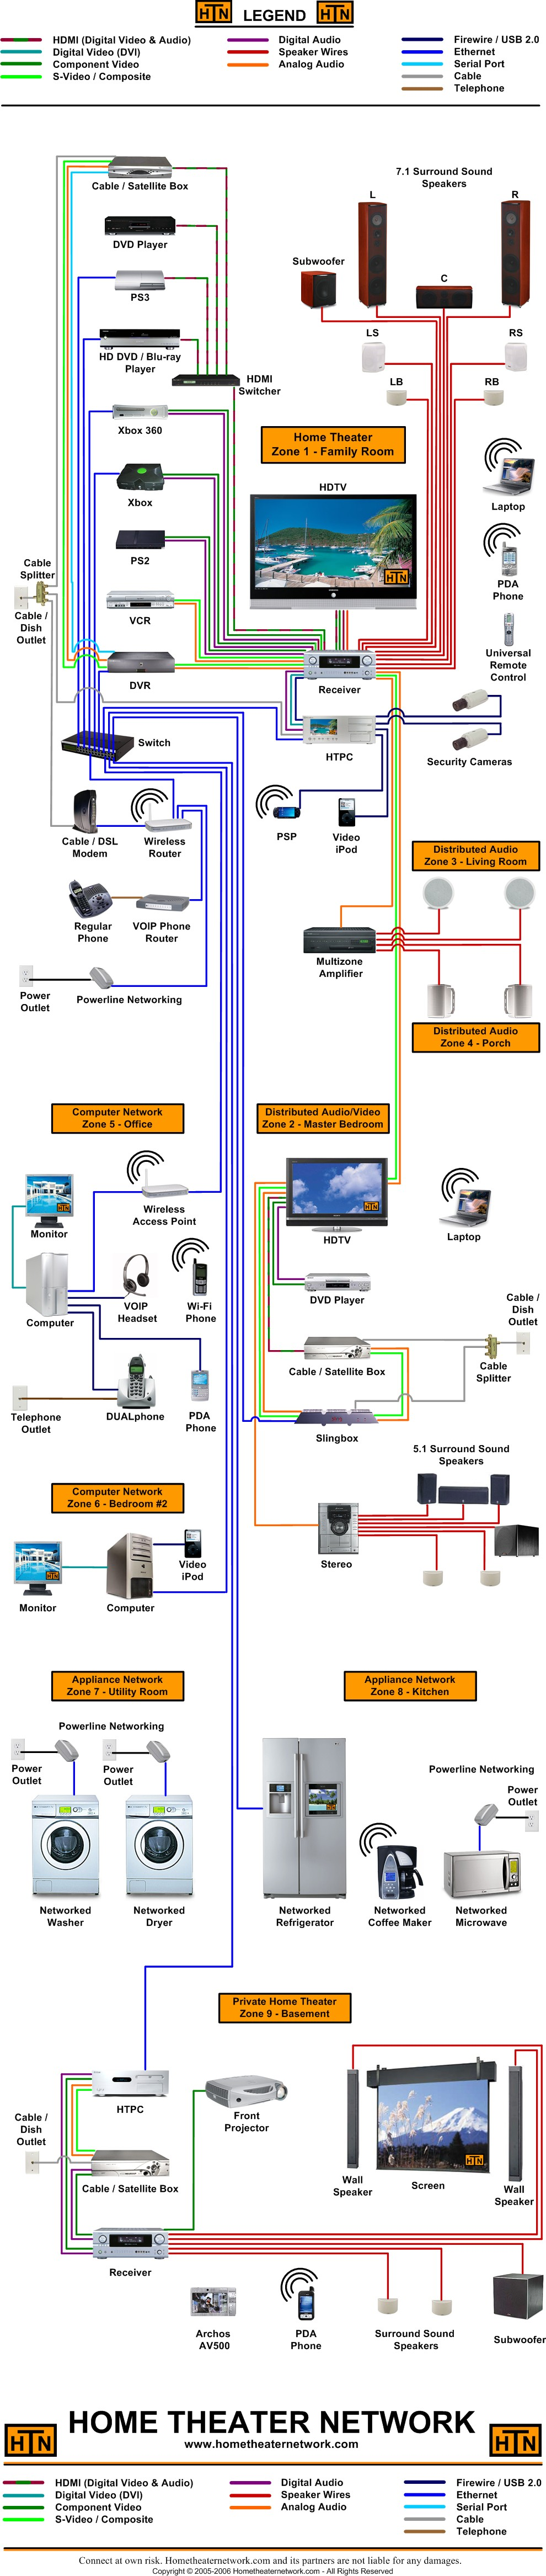 Insteon Wiring Diagram Home Theater Network S Large Block Diagram